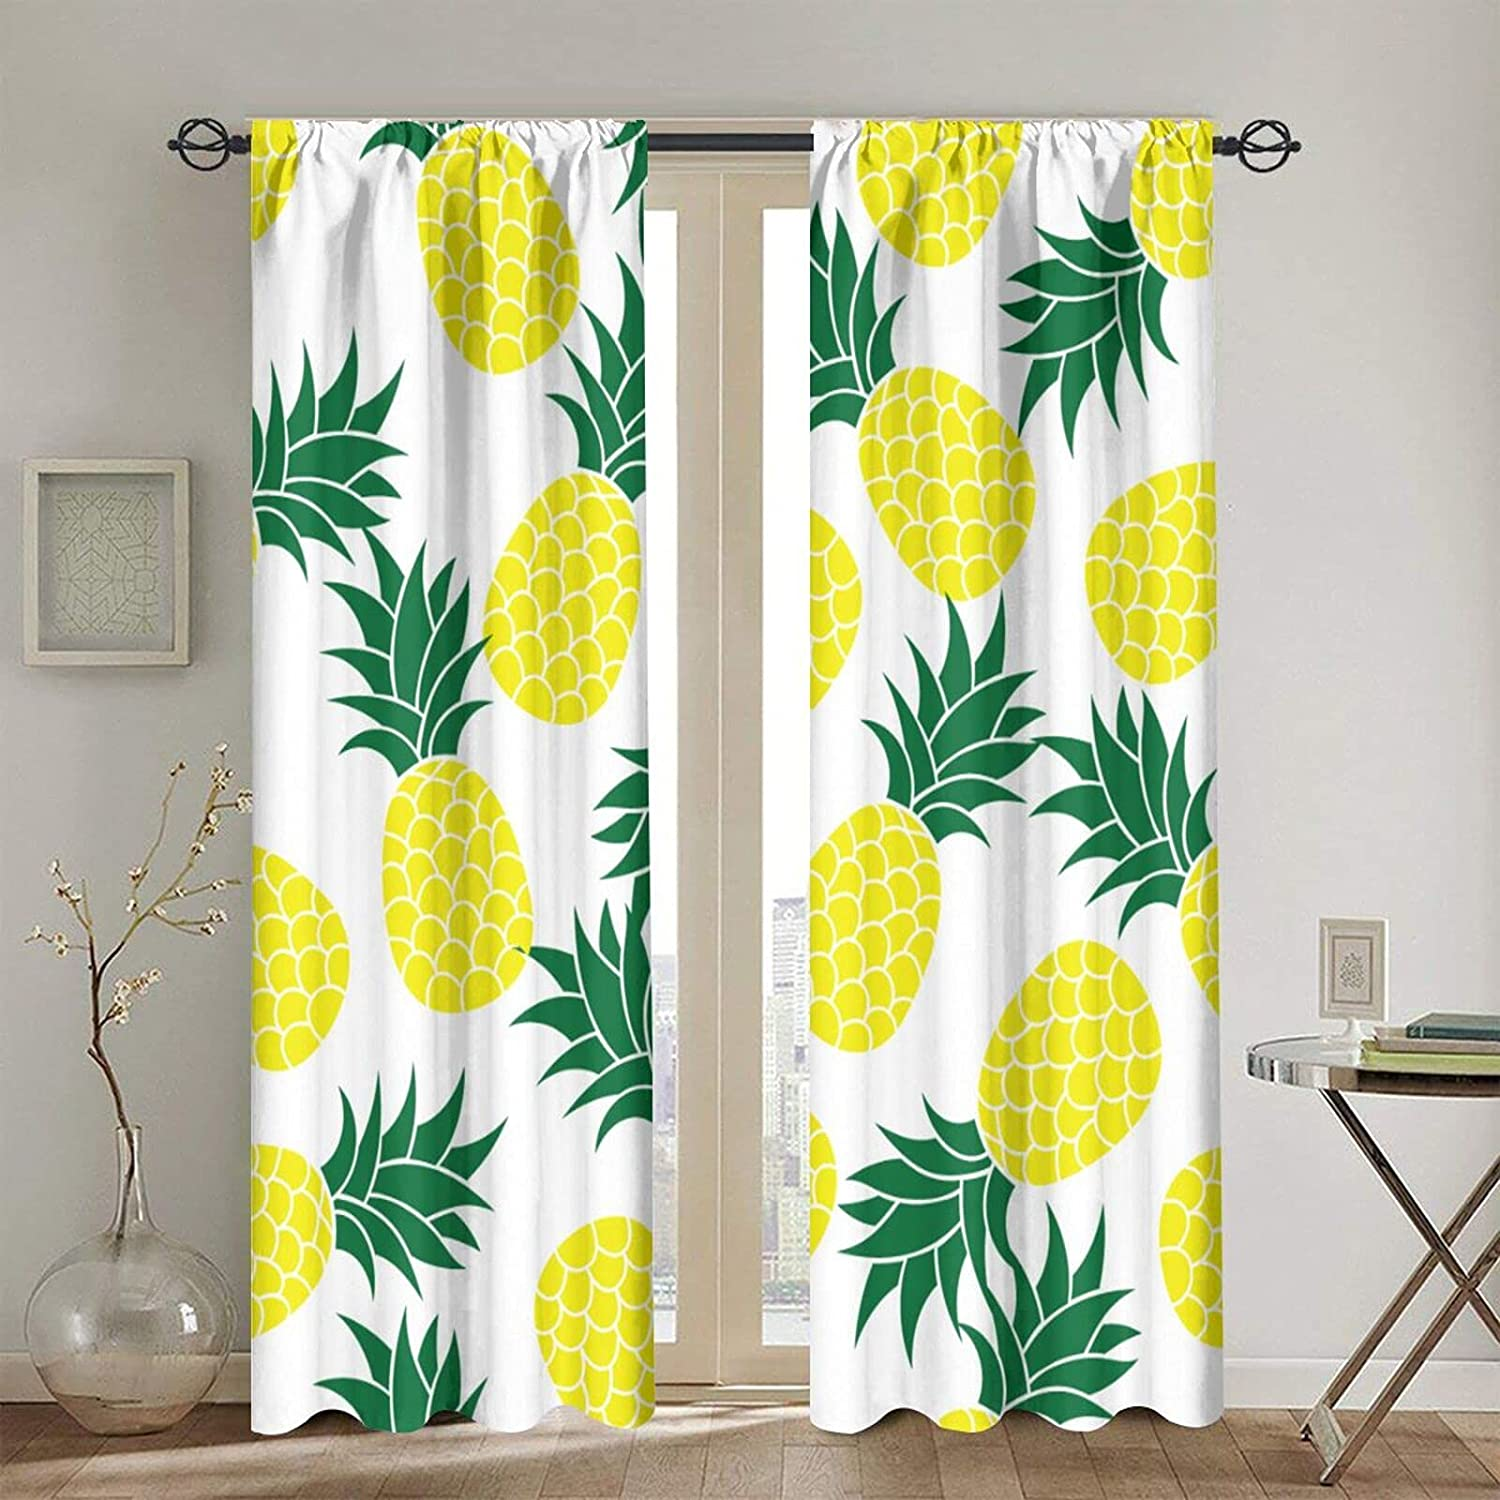 depot Rod Pocket Blackout Curtains Thermal Window Curtain Sales results No. 1 Insulated Se